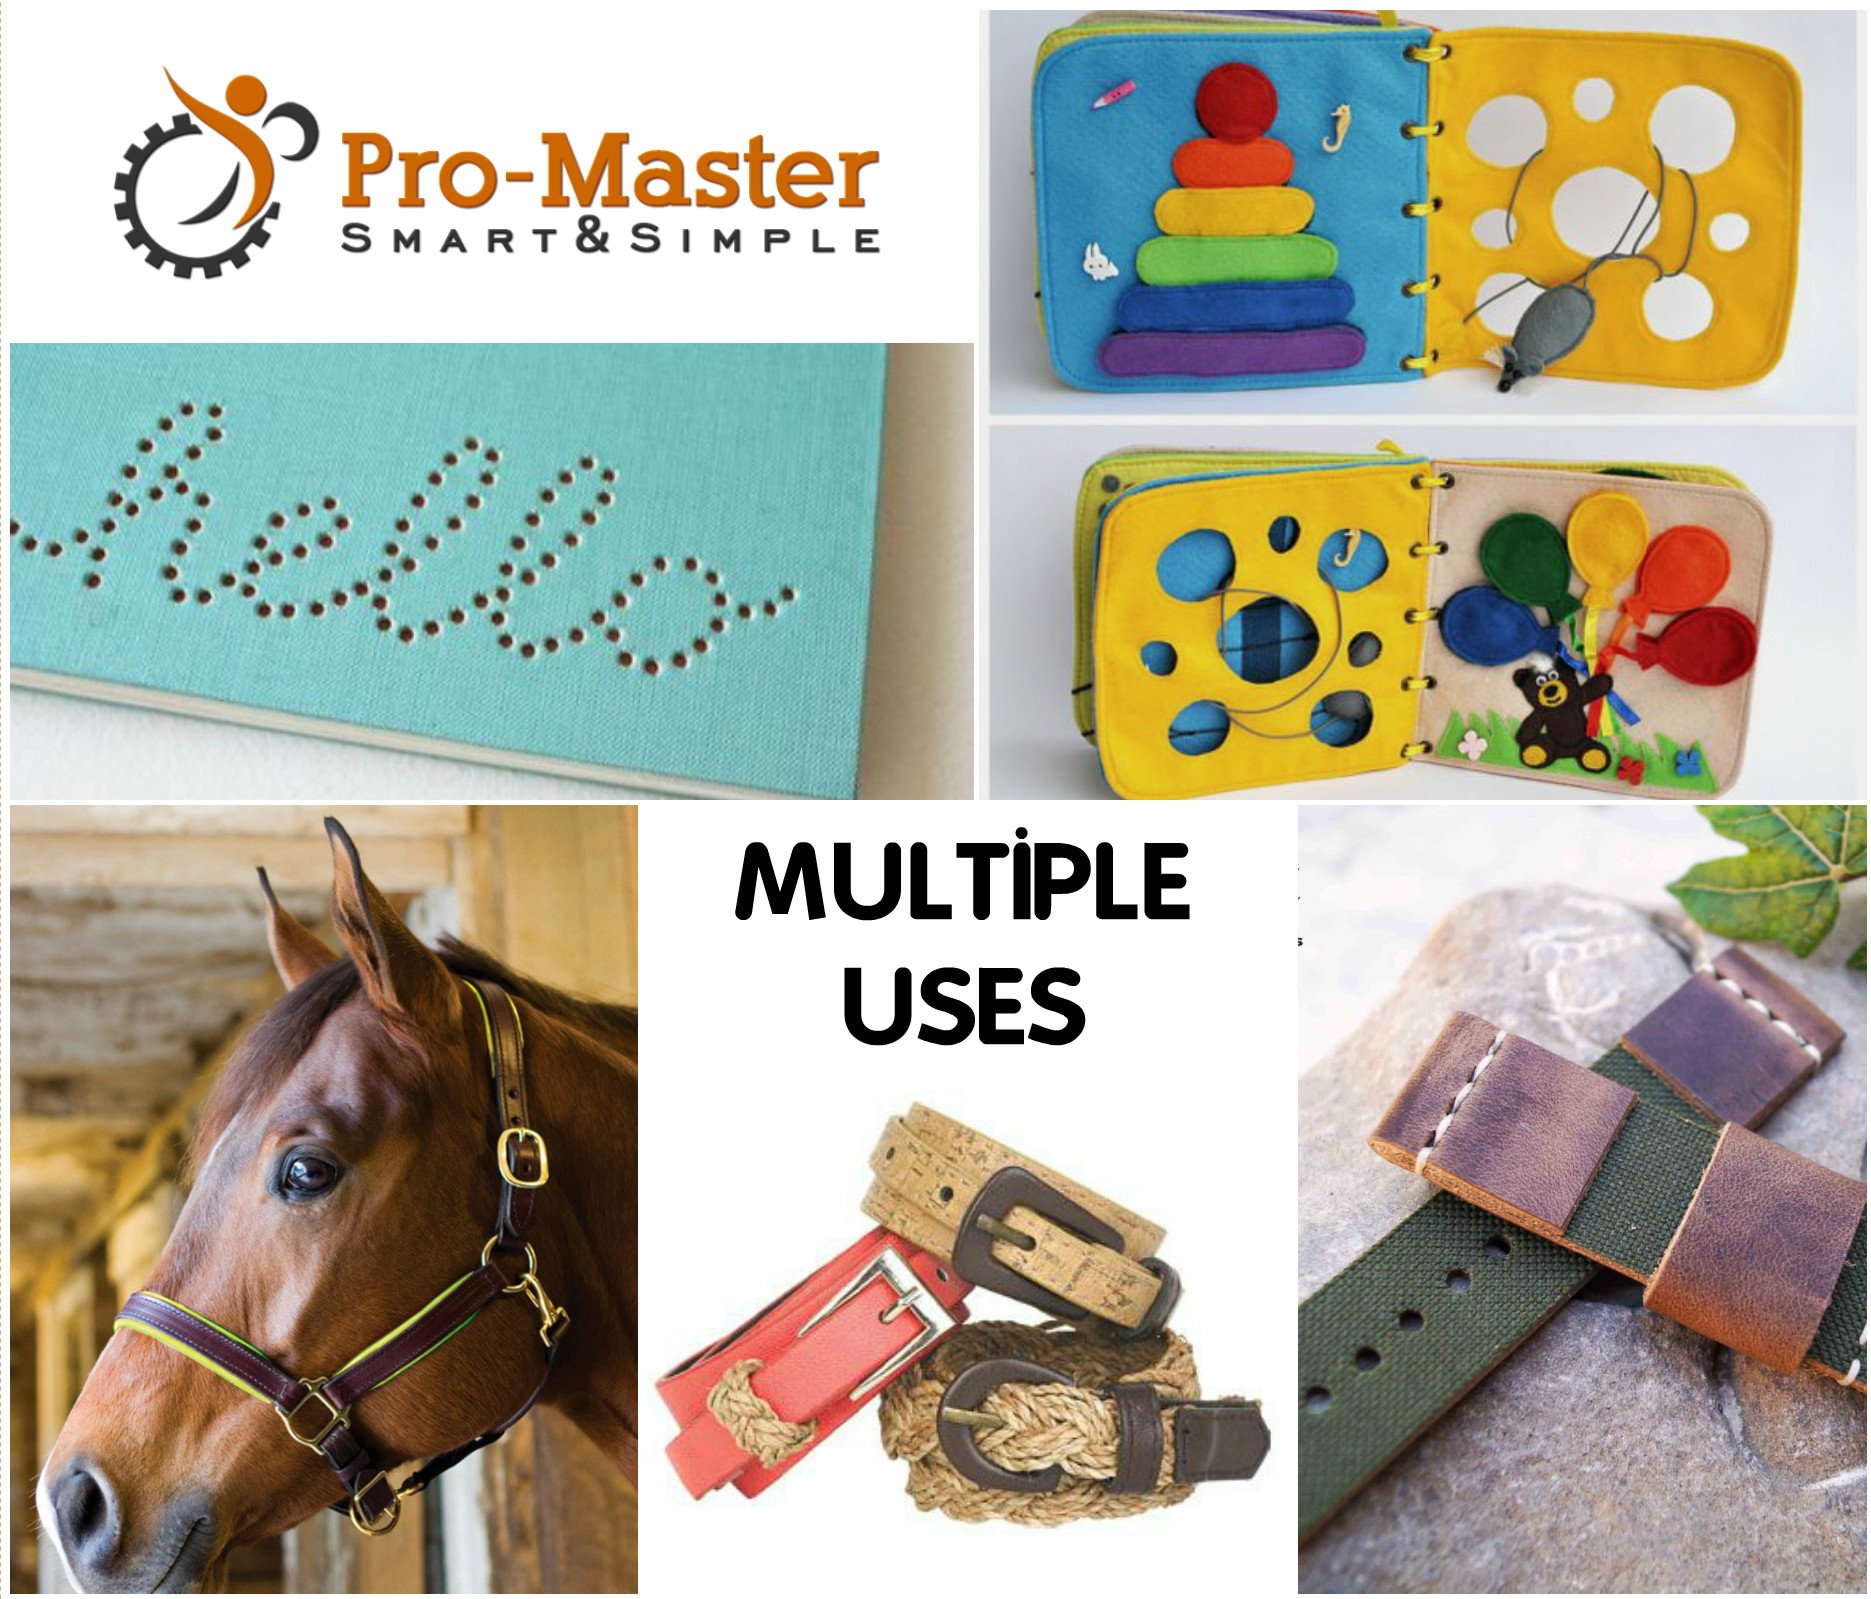 Best Leather Hole Punch Set for Belts, Watch Bands, Straps, Dog Collars, Saddles, Shoes, Fabric, DIY Home or Craft Projects. Super Heavy Duty Rotary Puncher, Multi Hole Sizes Maker Tool, 3 Yr Warranty by ProMaster (Image #9)